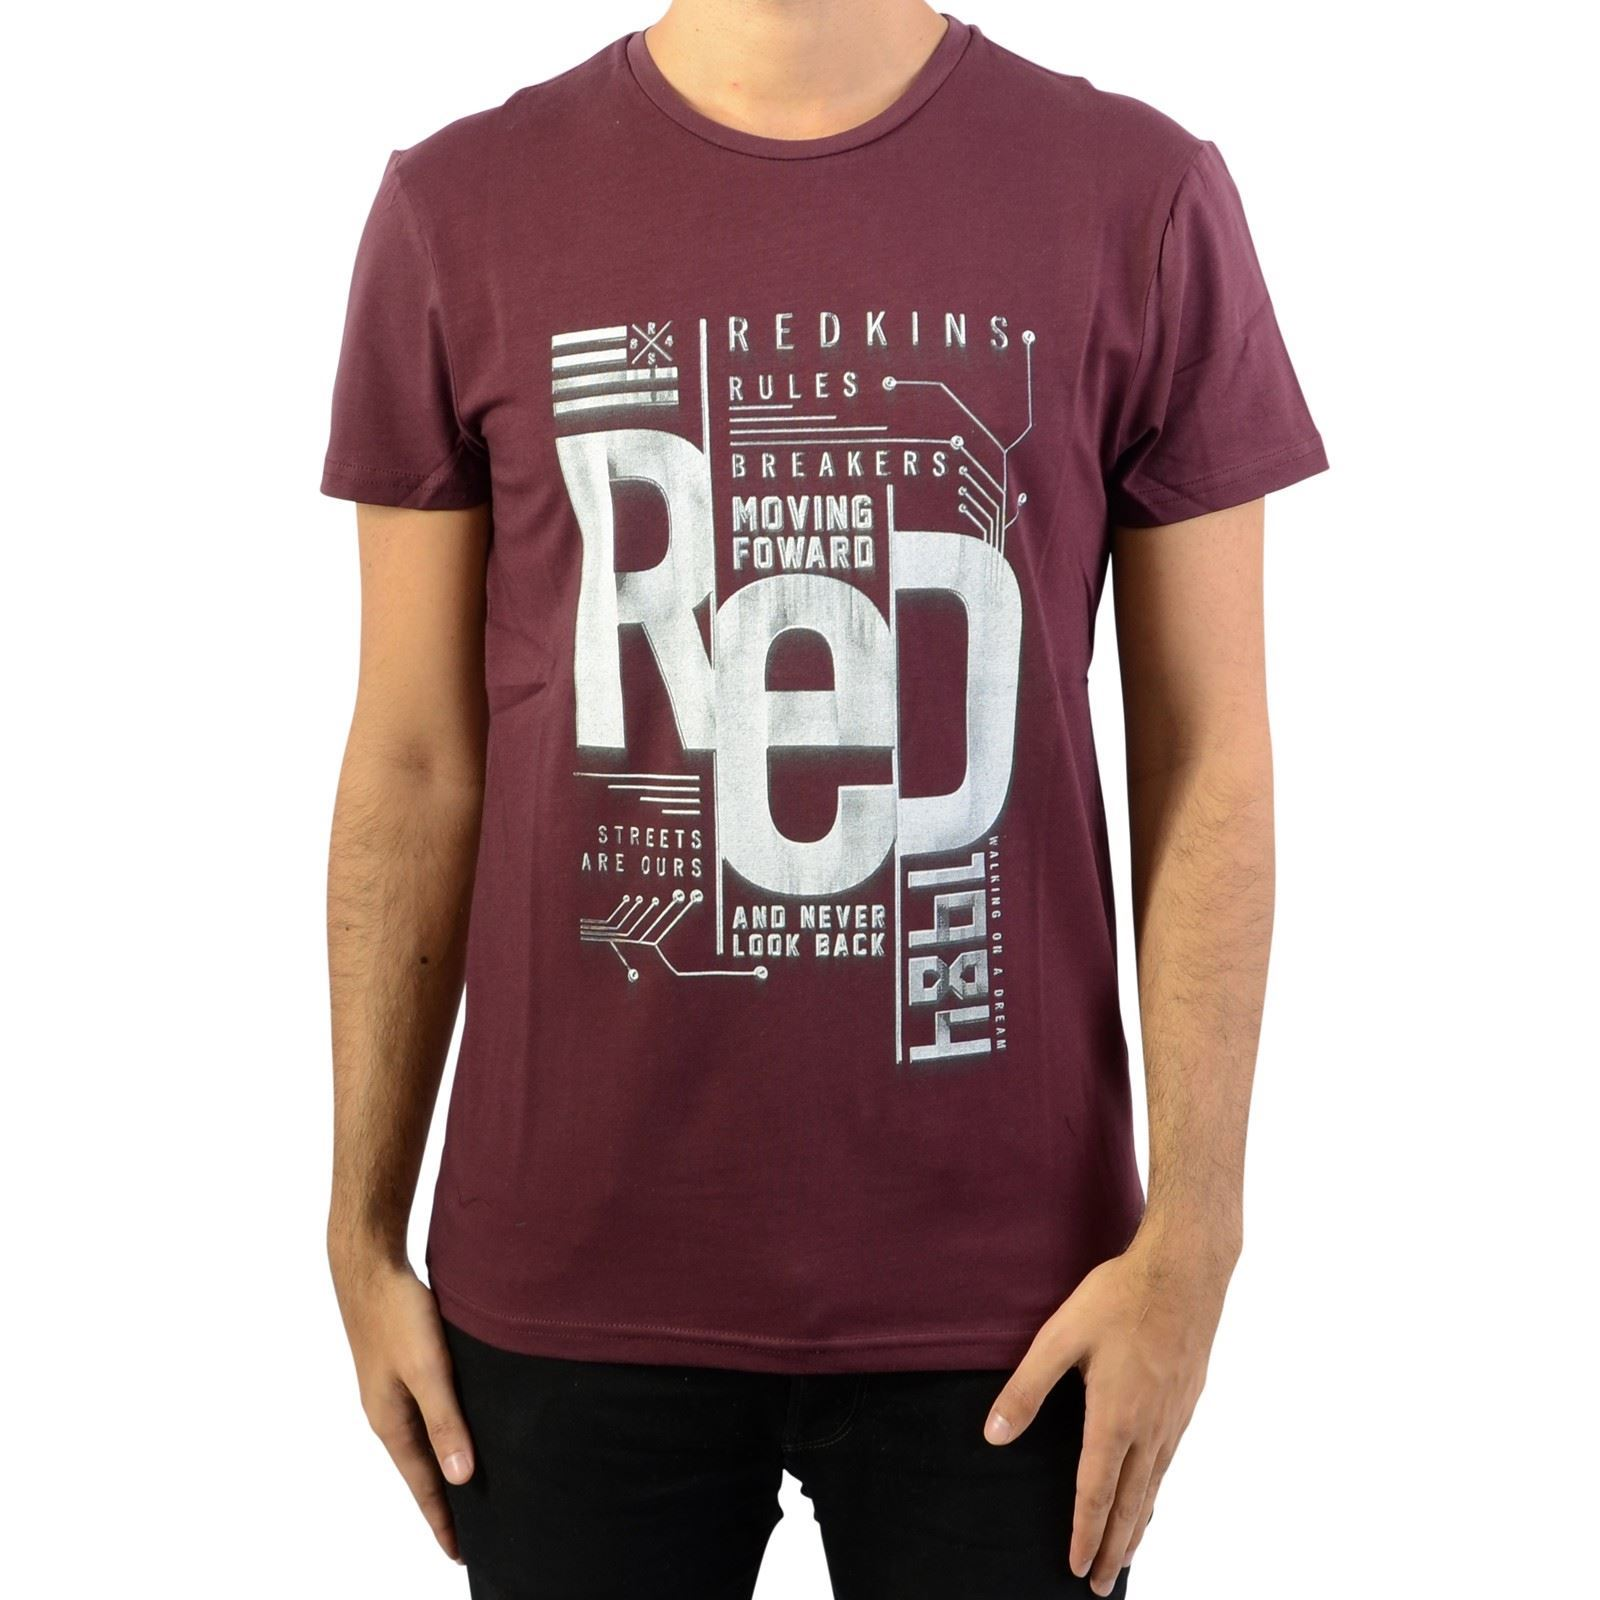 Redskins T-shirt manches courtes - rouge   BrandAlley 72bd7c2404a